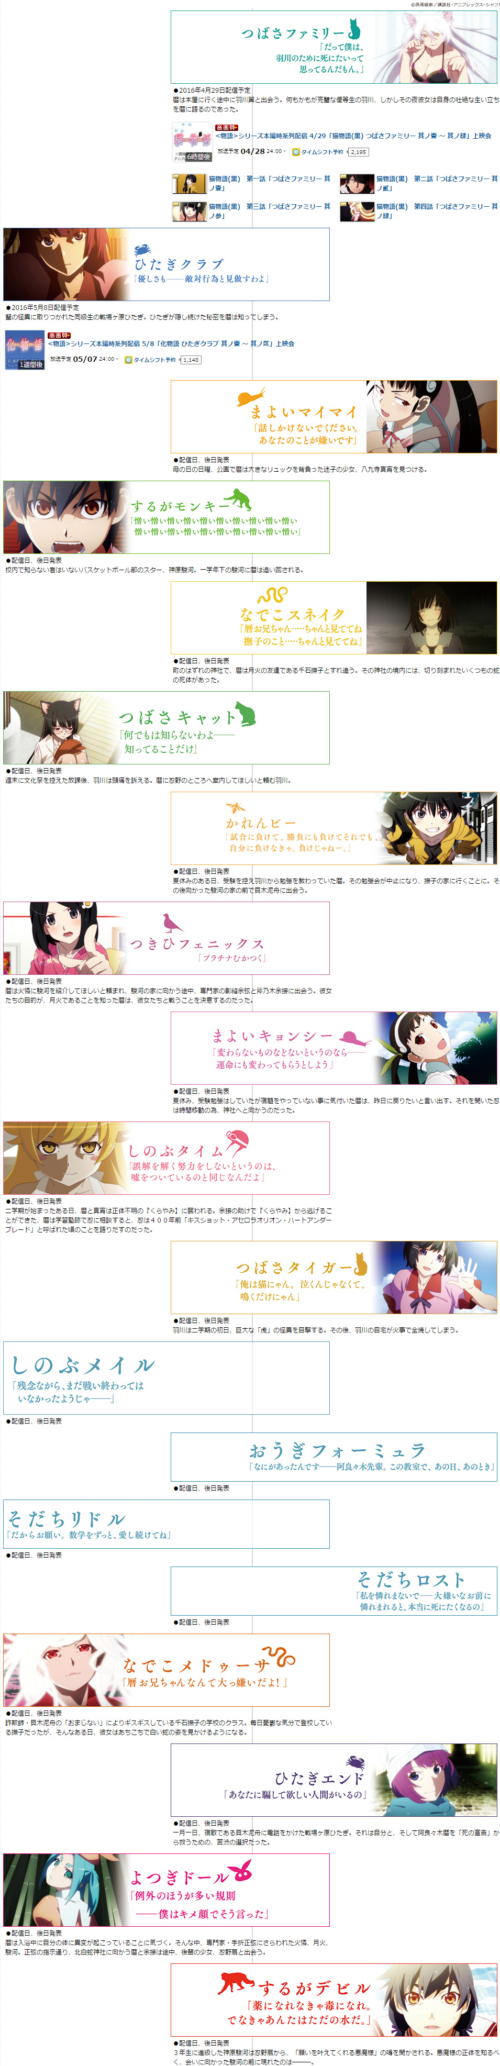 screencapture-ch-nicovideo-jp-monogatari-series-1461831447533.png